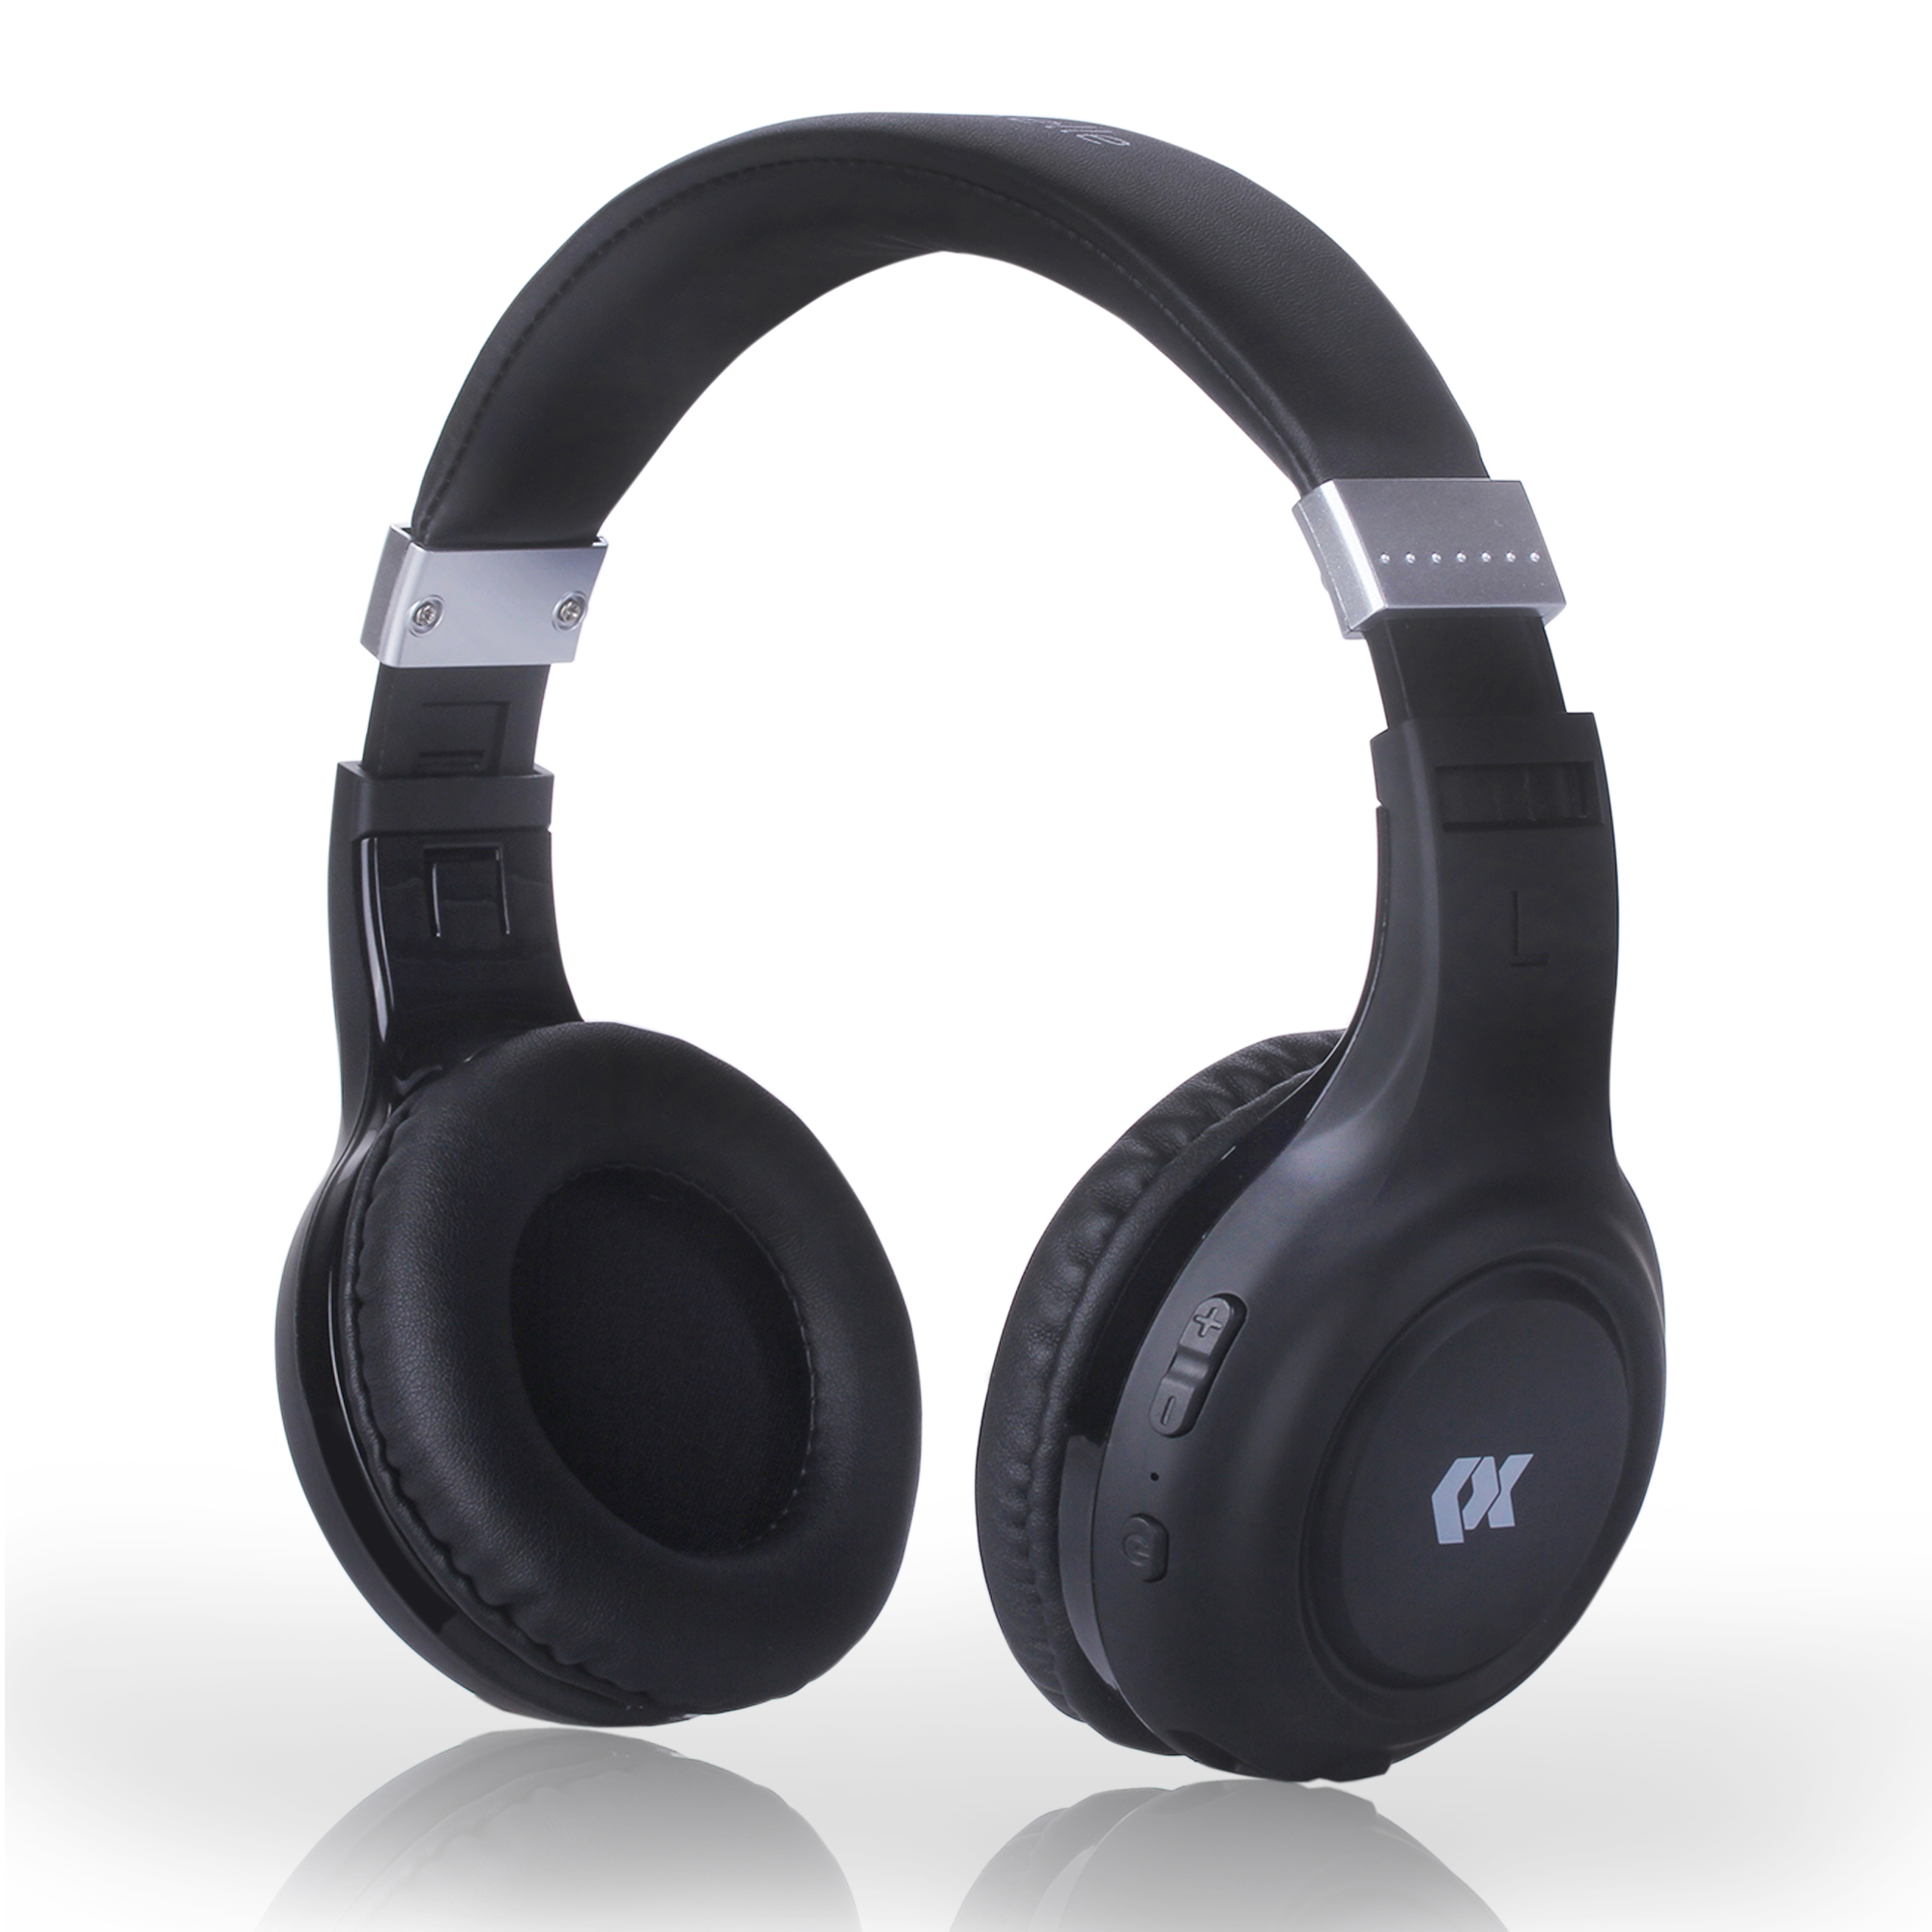 Proxelle SH04B Over Ear Bluetooth Headphone with Mic, Headset for Gaming TV PC Volume Control